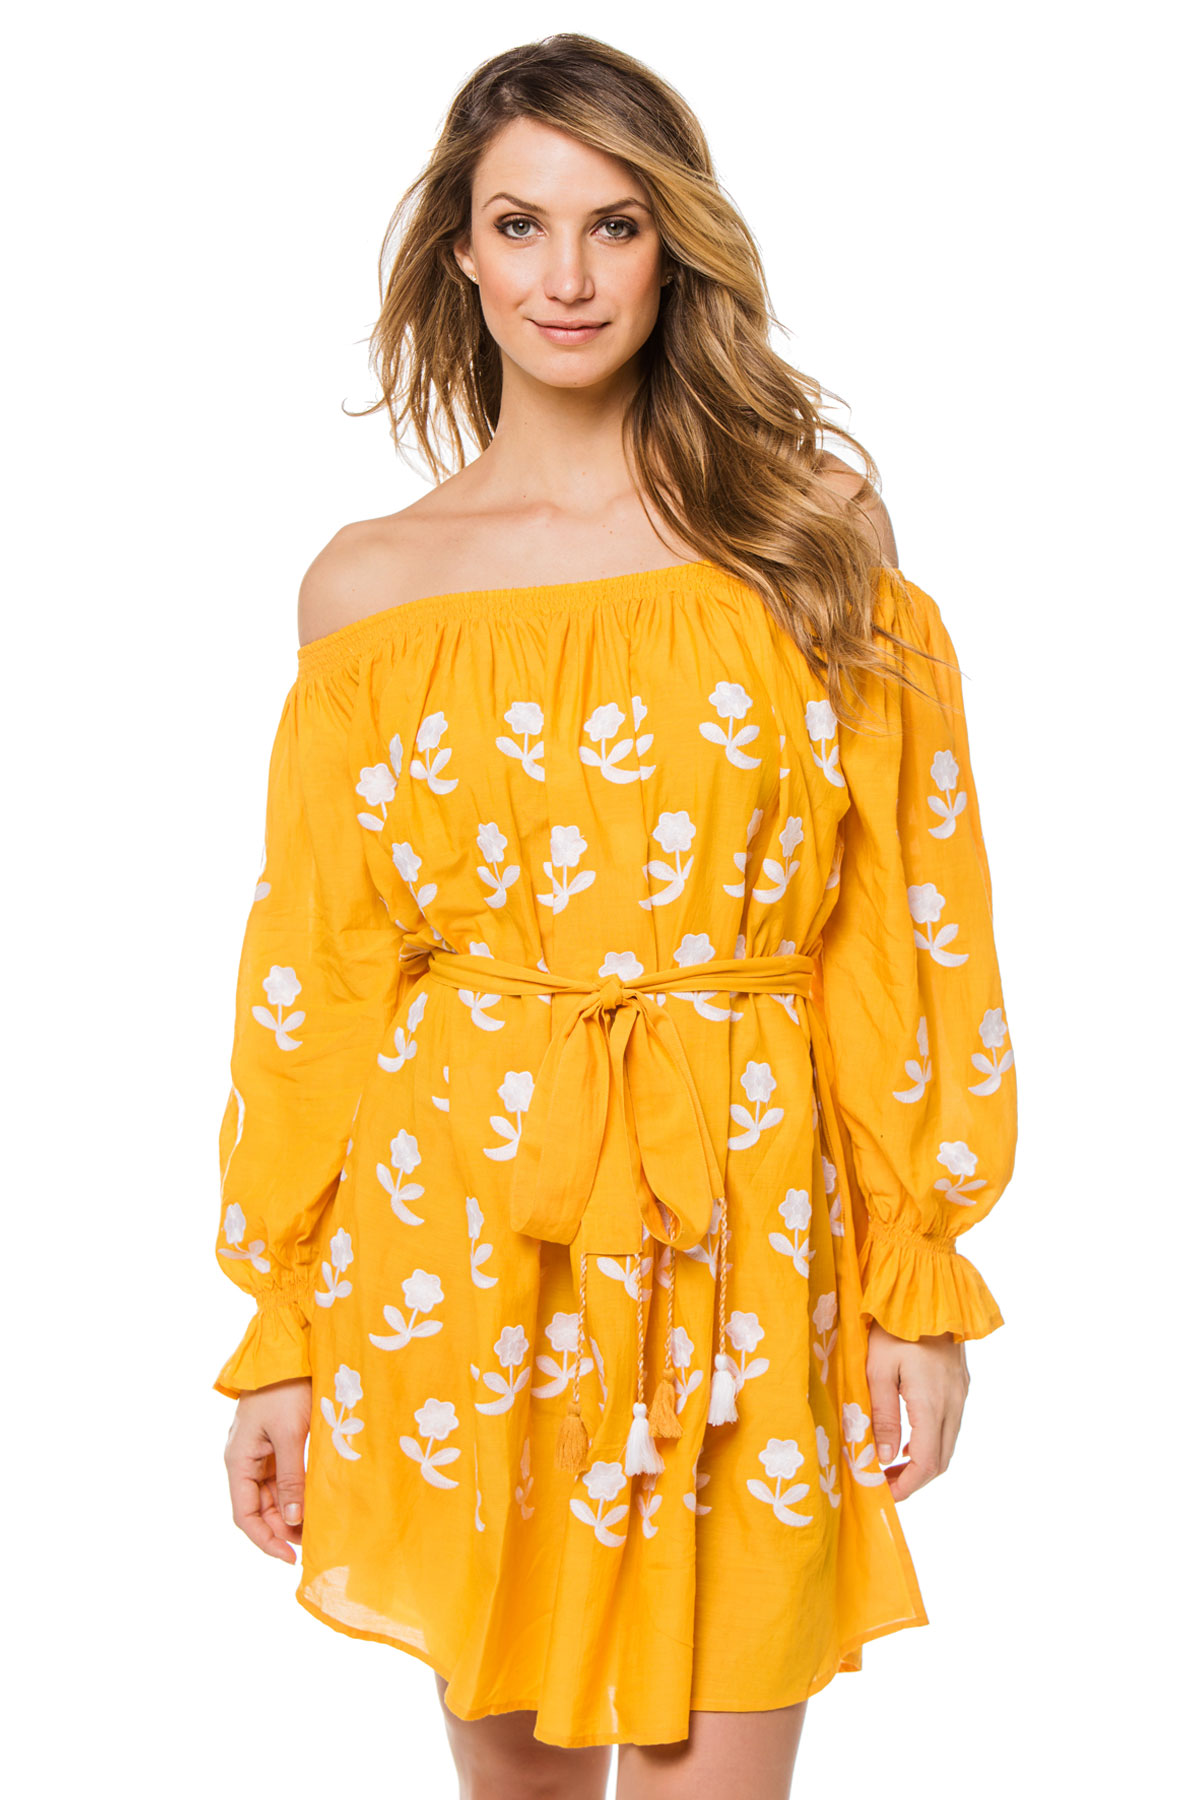 Flower Power Off The Shoulder Dress - Yellow